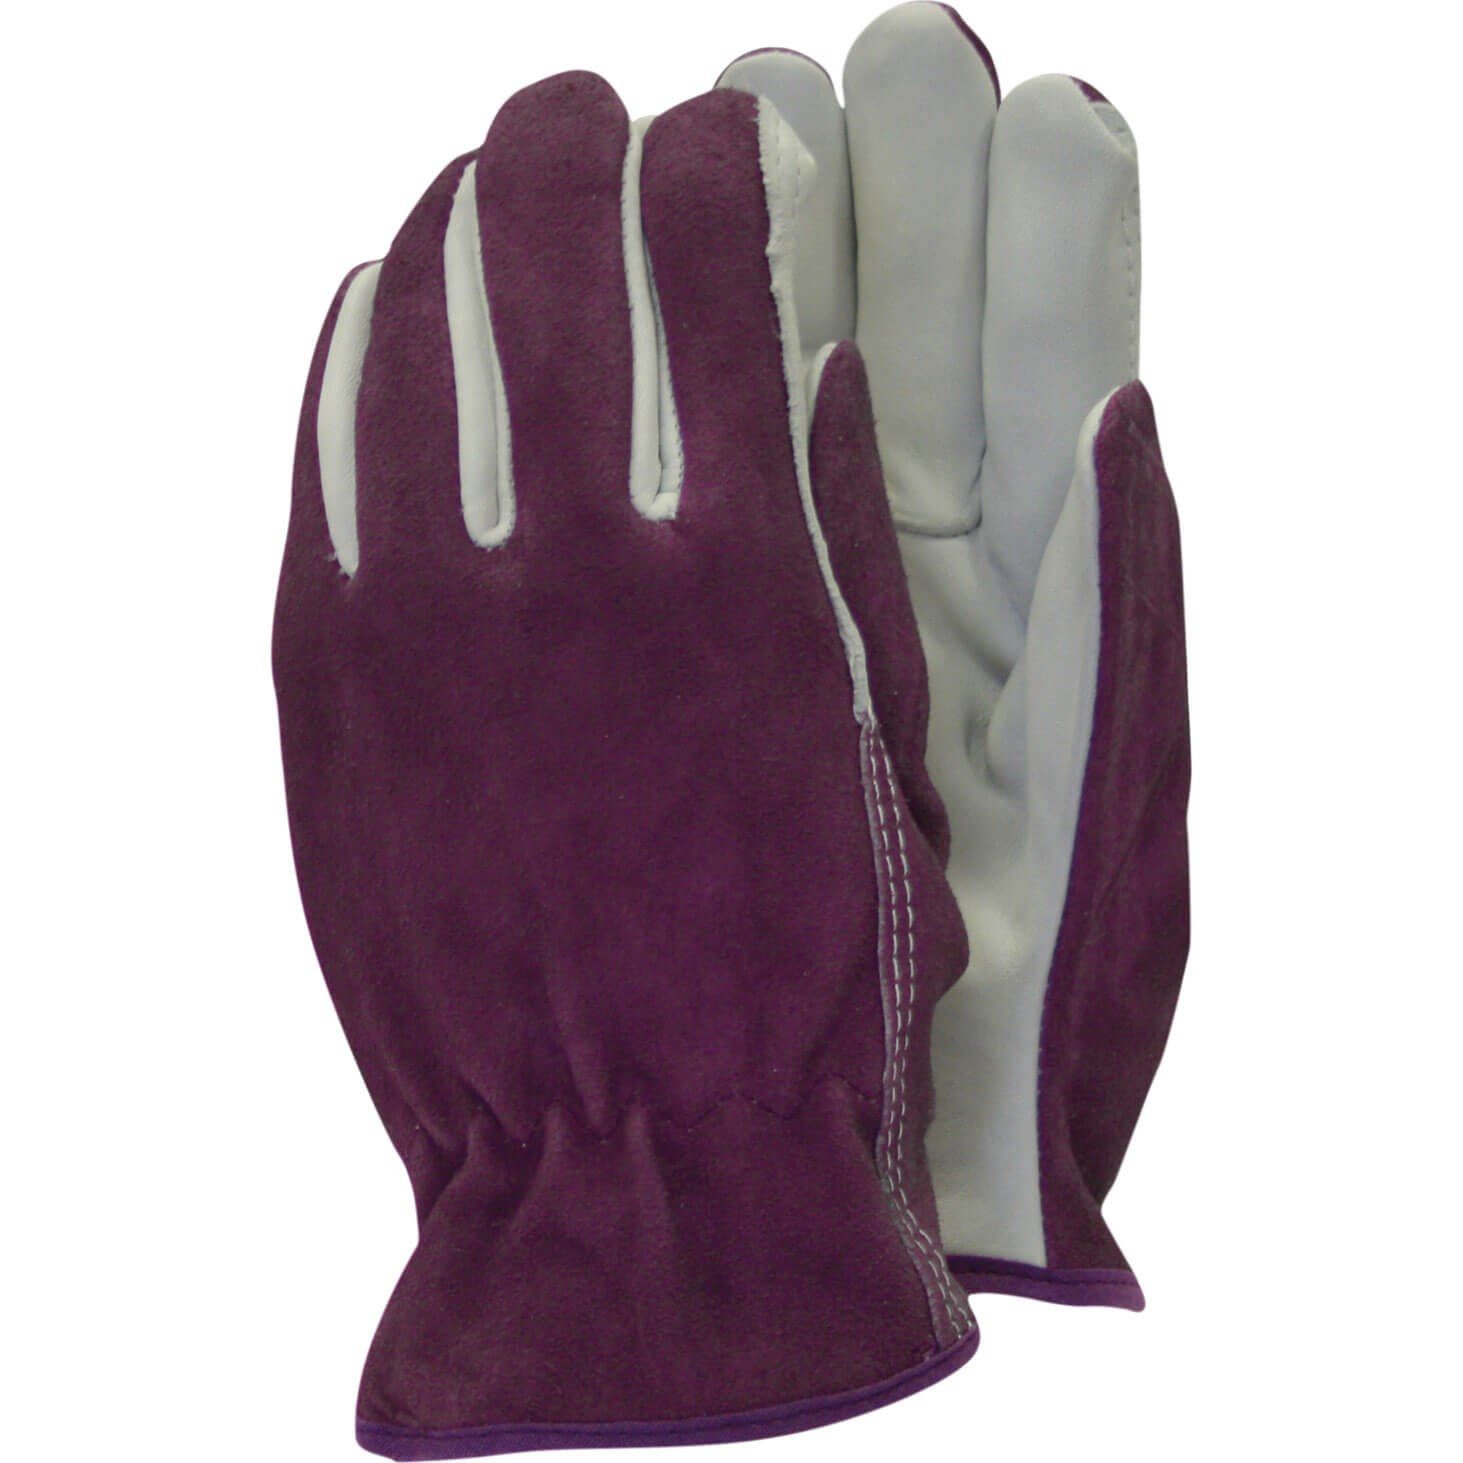 38cdfae12 Town & Country Premium Leather & Suede Ladies Gloves